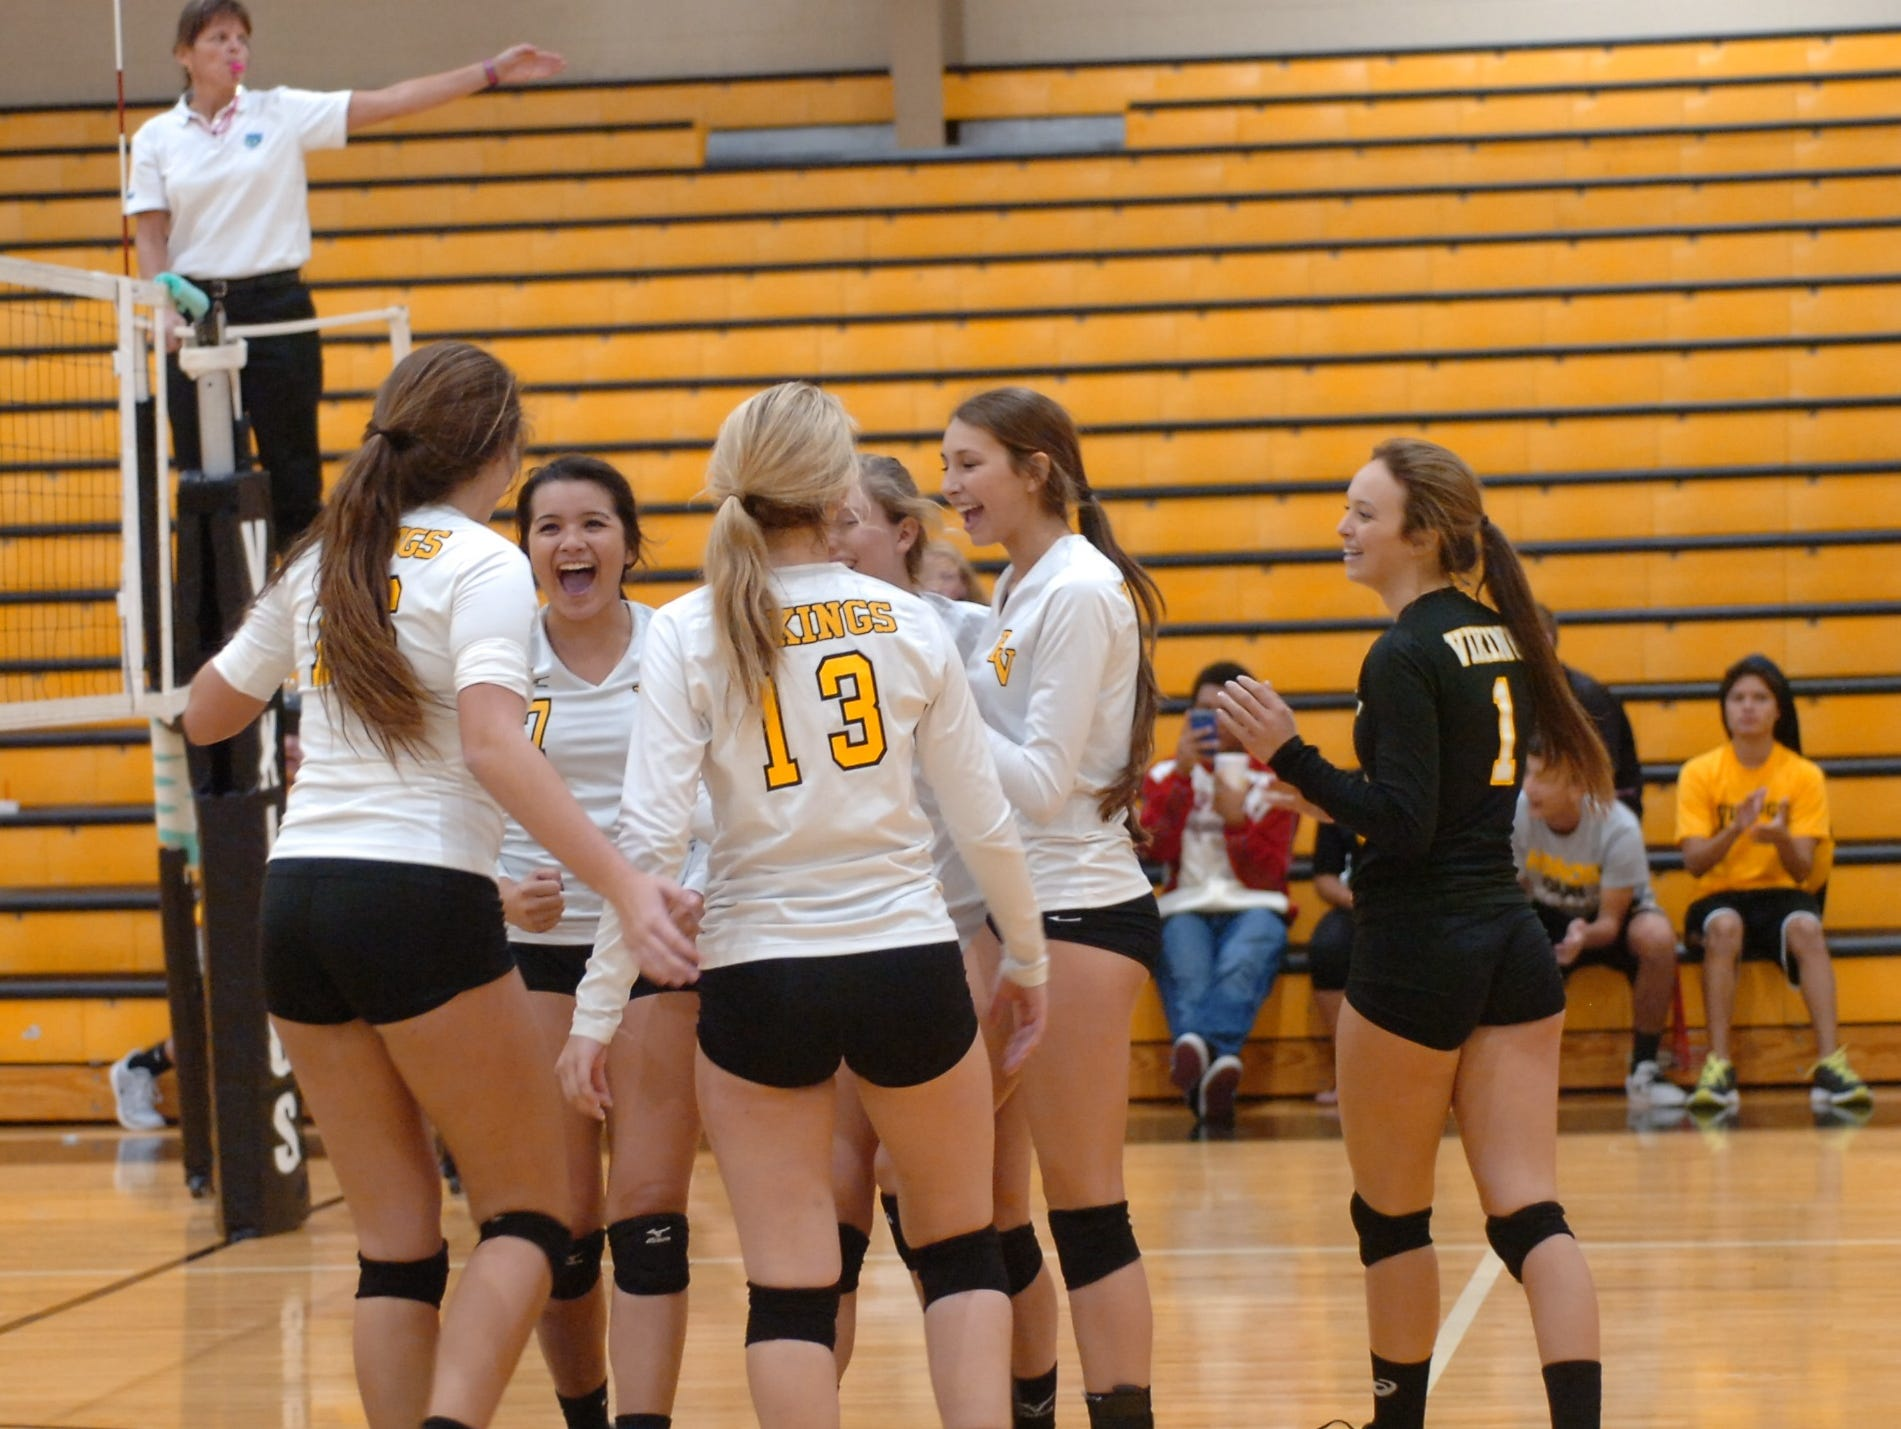 The Bishop Verot girls volleyball team celebrates after winning a point during its District 4A-10 win on Thursday